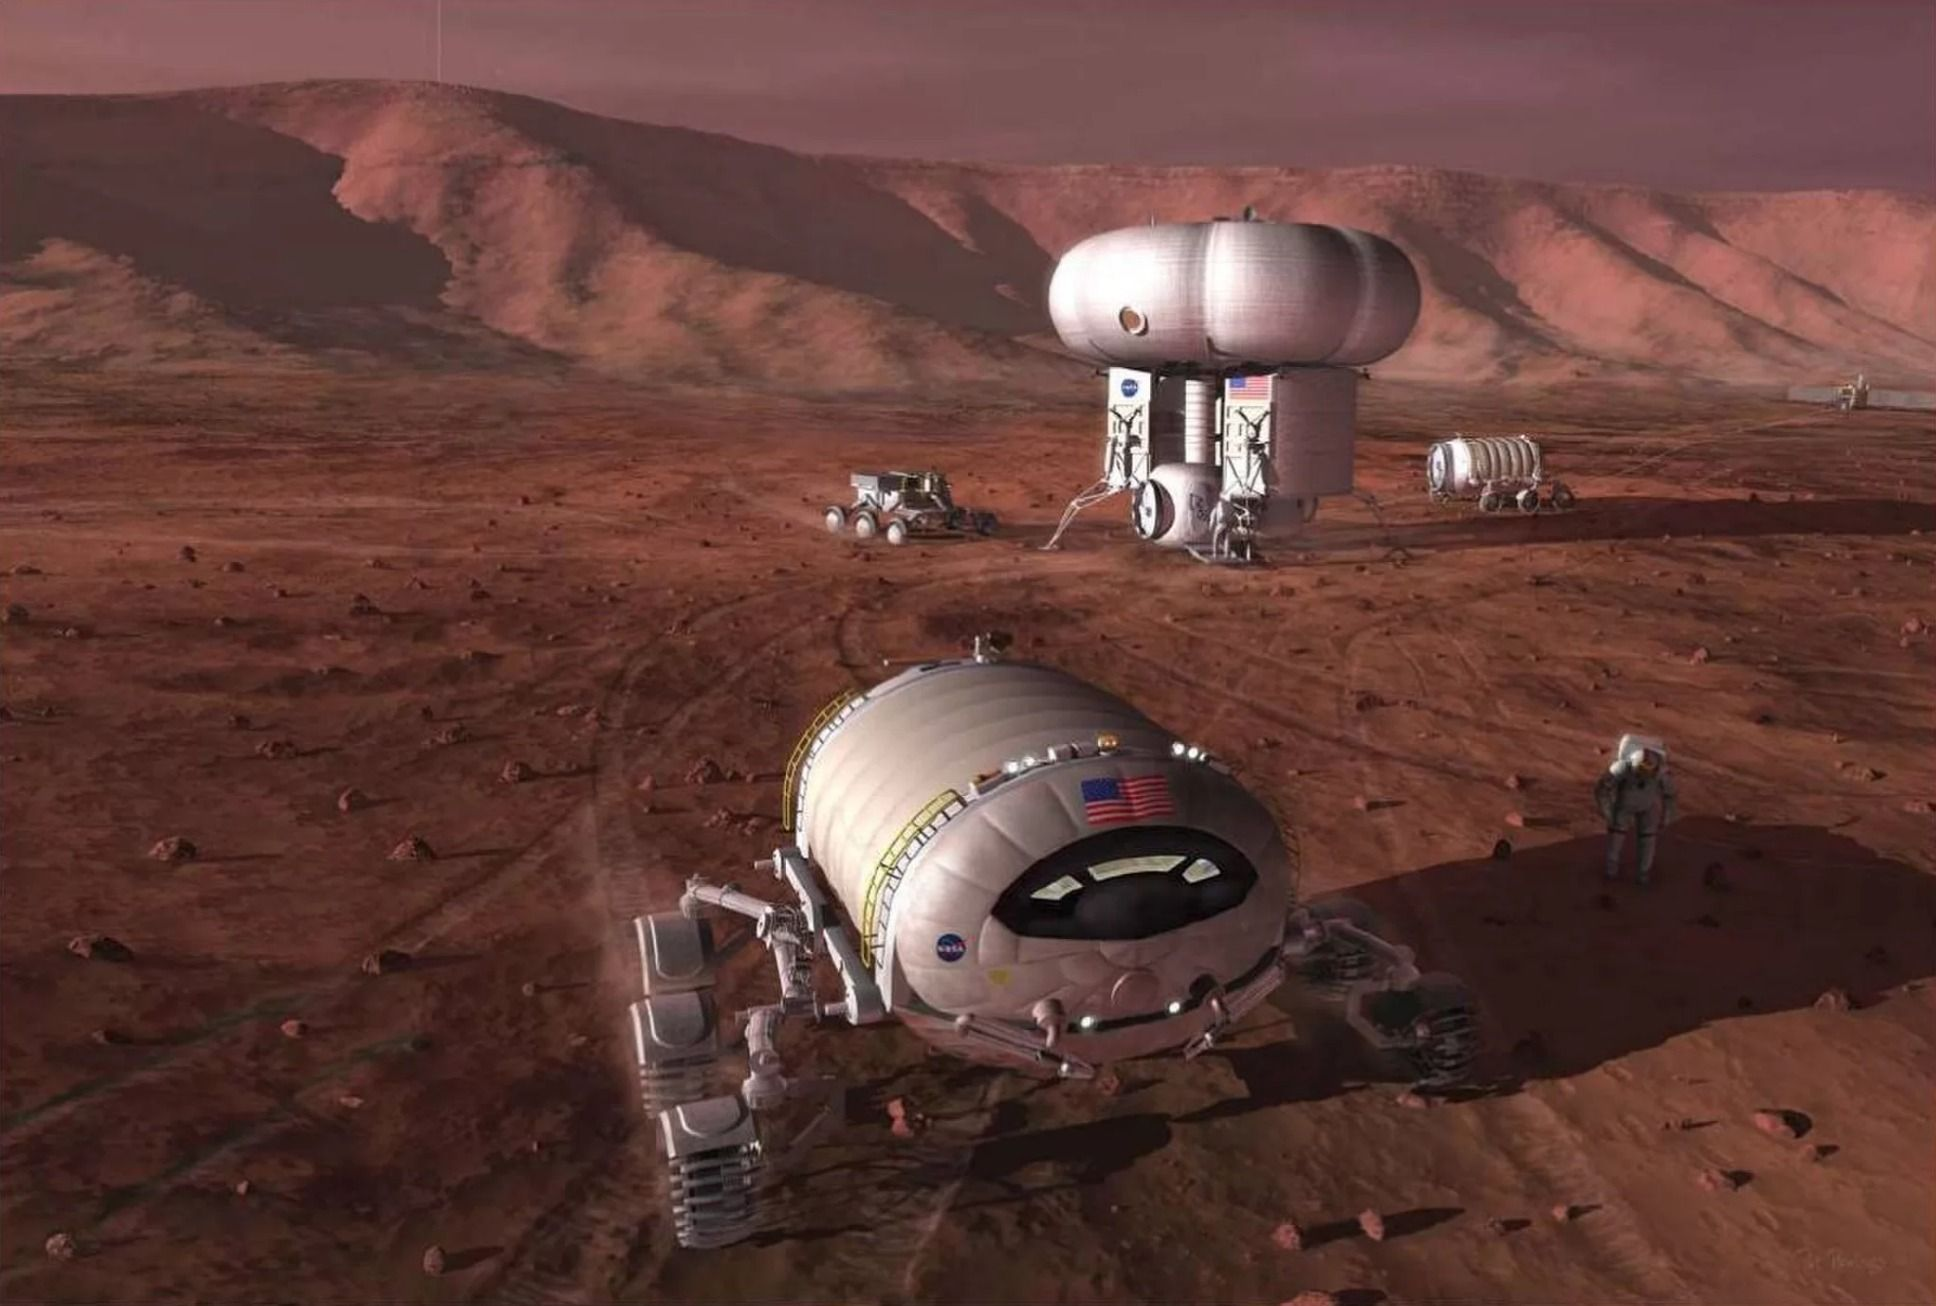 martian helicopters human colonies and drilling for - HD1389×949